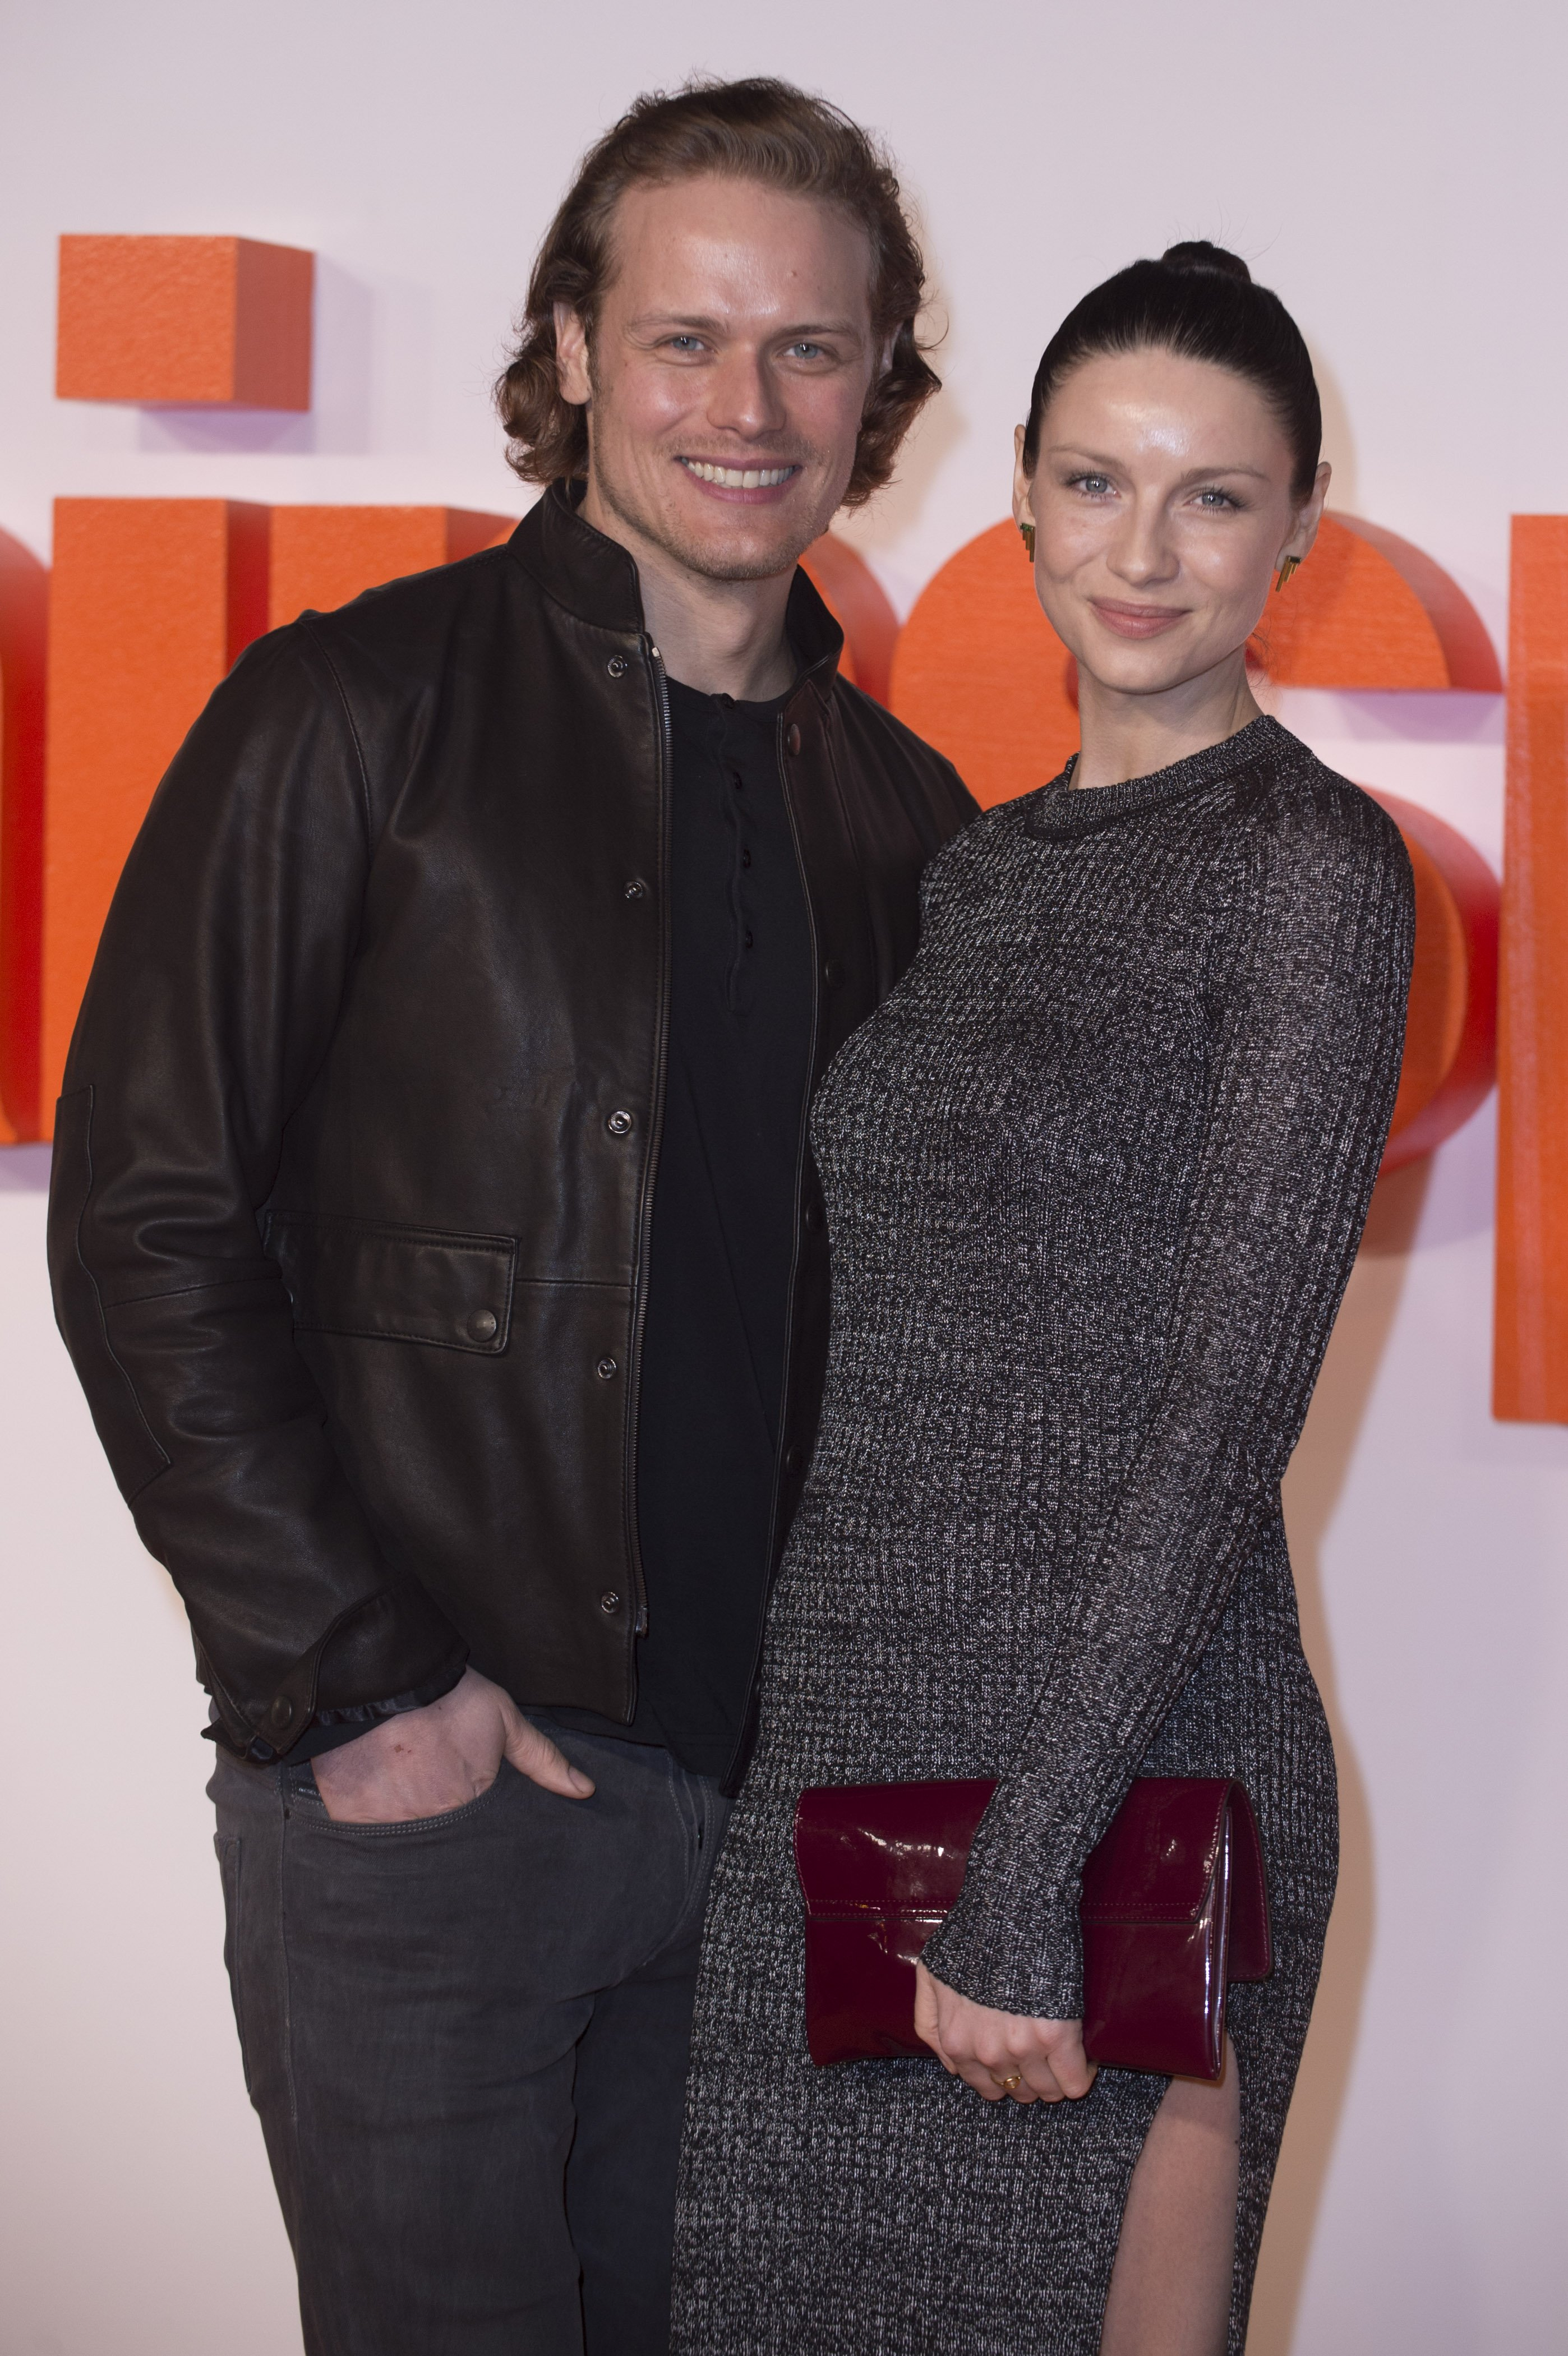 New* 30 HQ Pics of Caitriona Balfe & Sam Heughan at the